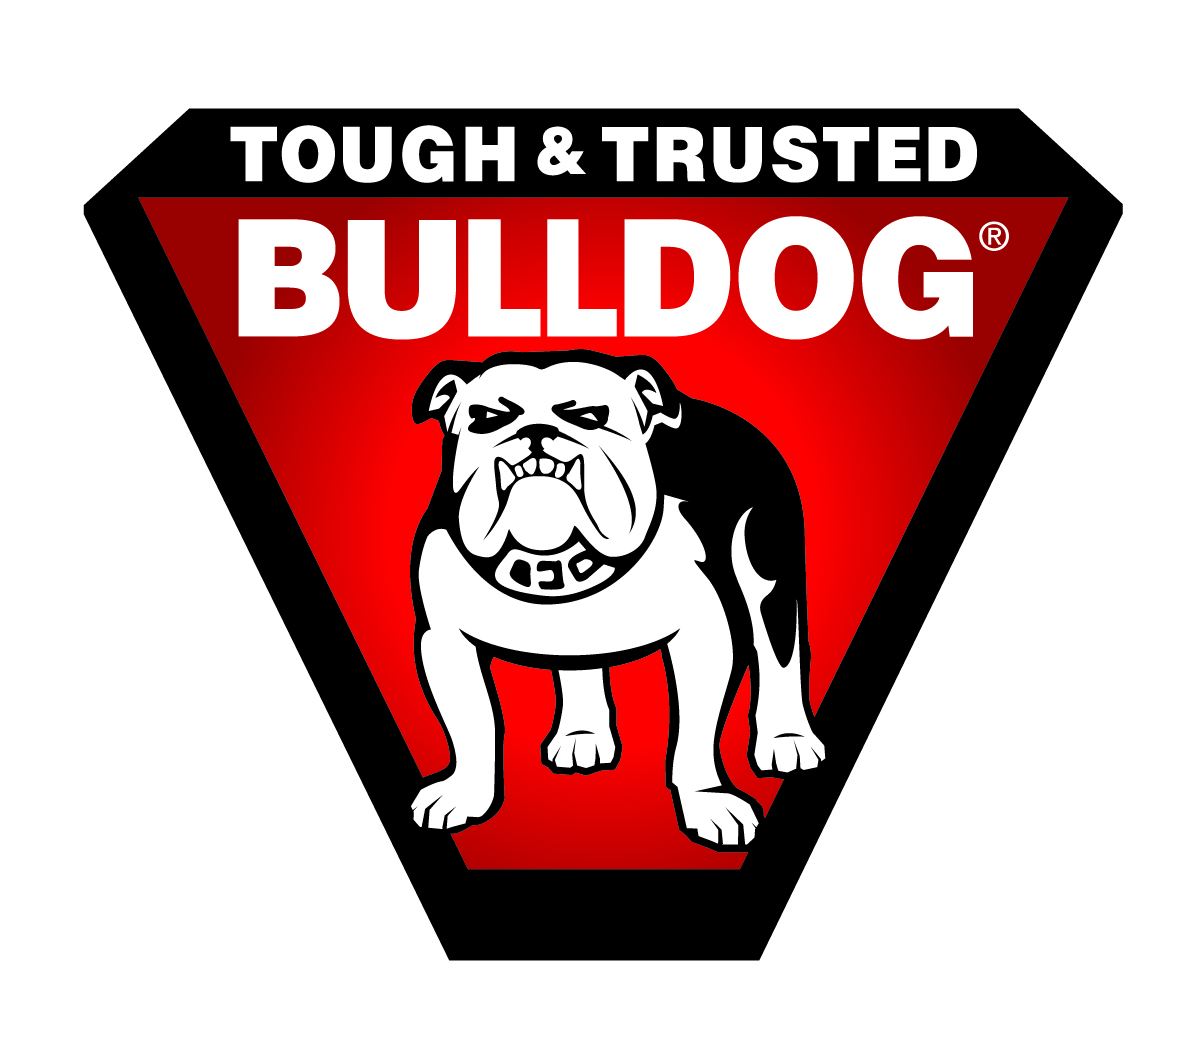 bulldog-4color-gradient.jpg